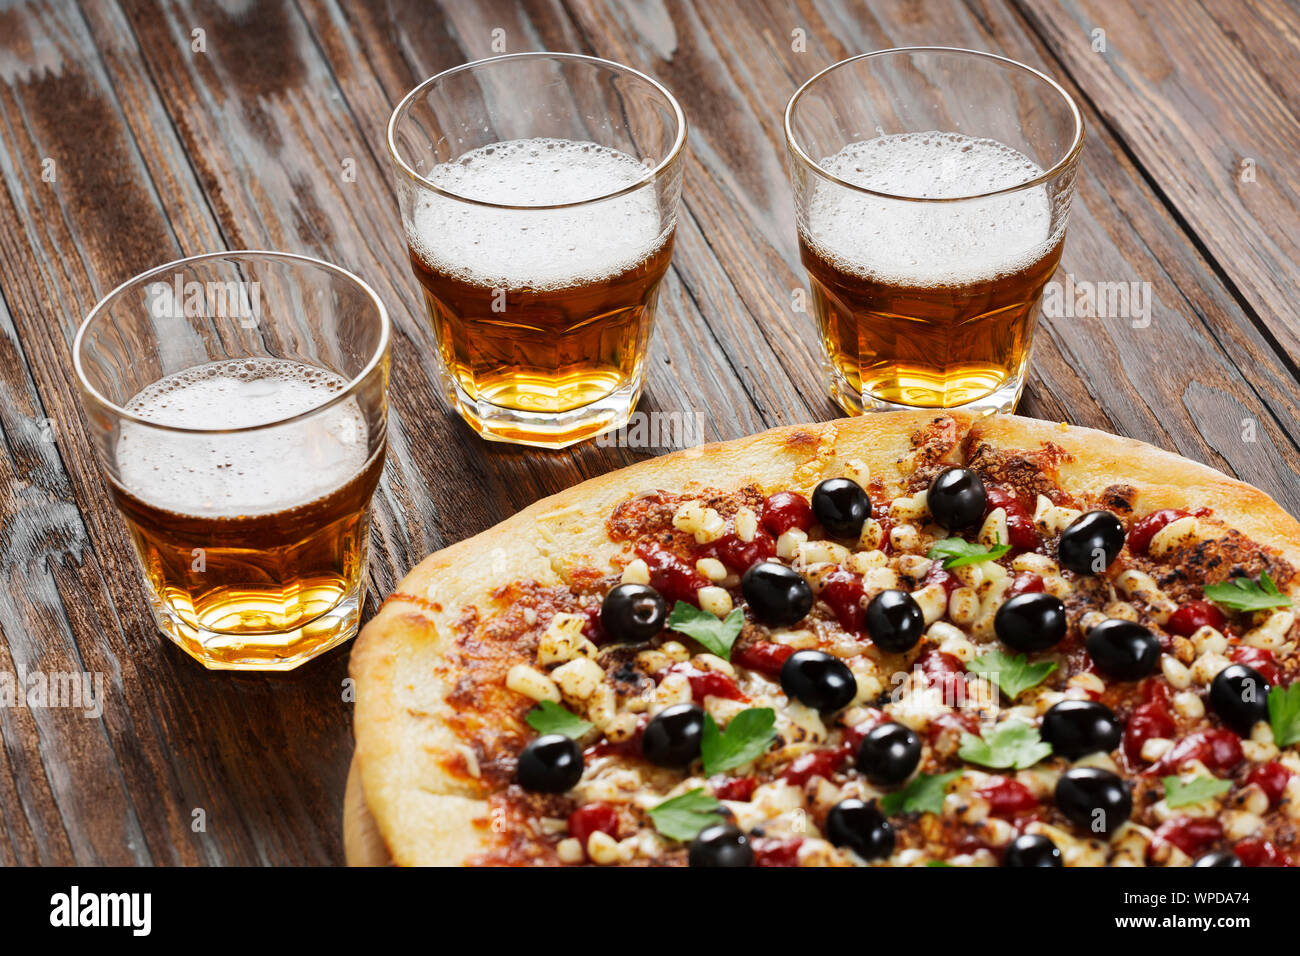 cheese, friends, pepperoni, eating, happy hour, wine, margarita pizza, old town pizza, old town pizza, chilli Stock Photo